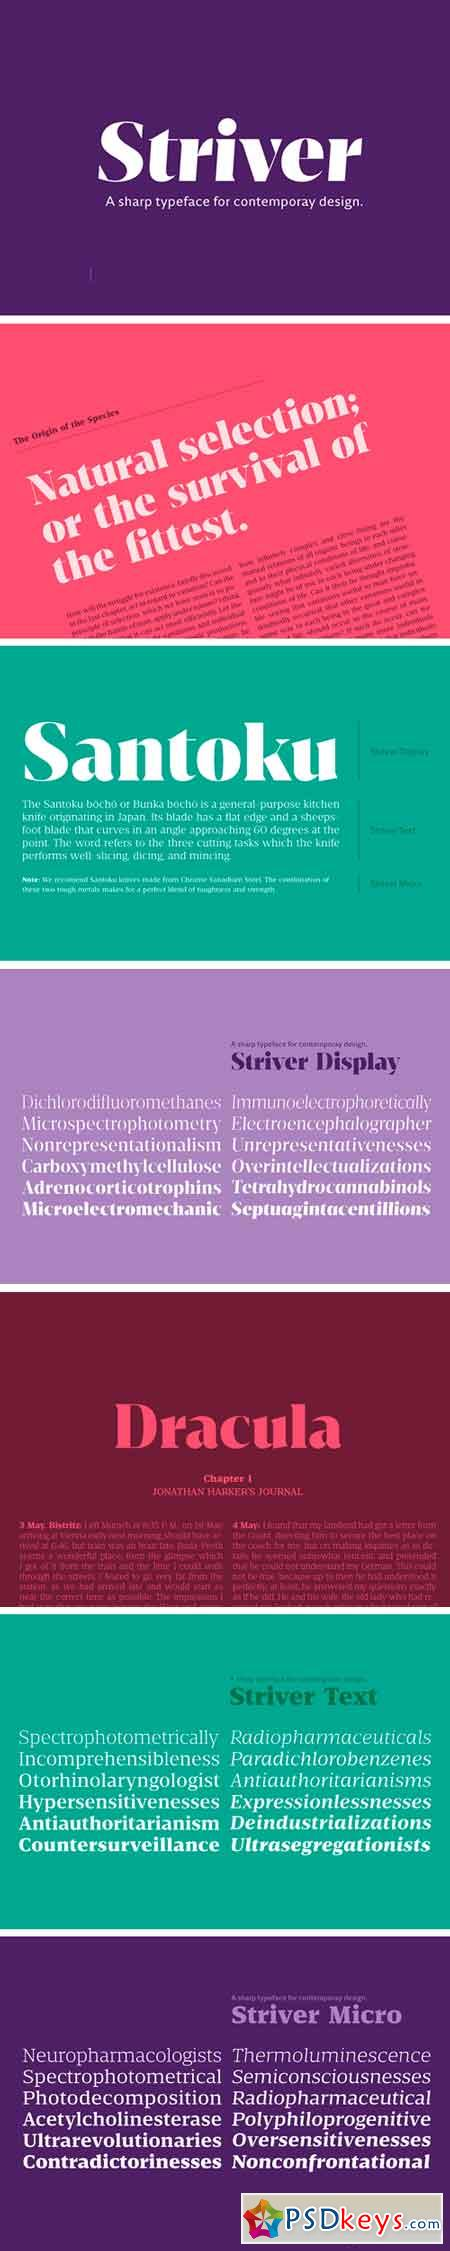 Striver Superfamily